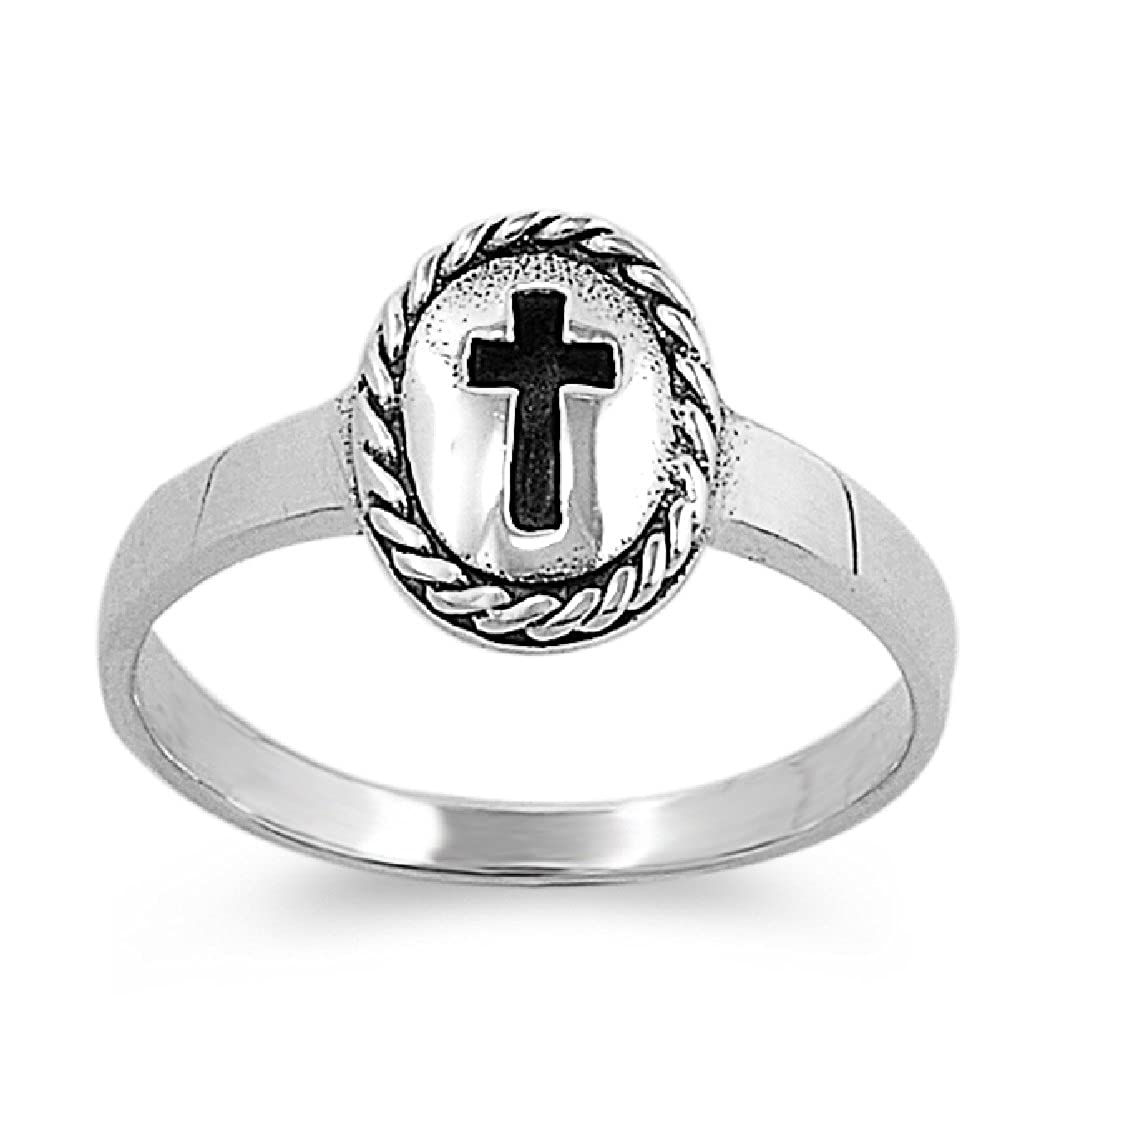 CloseoutWarehouse Messiah Cross Petite Ring Sterling Silver 925